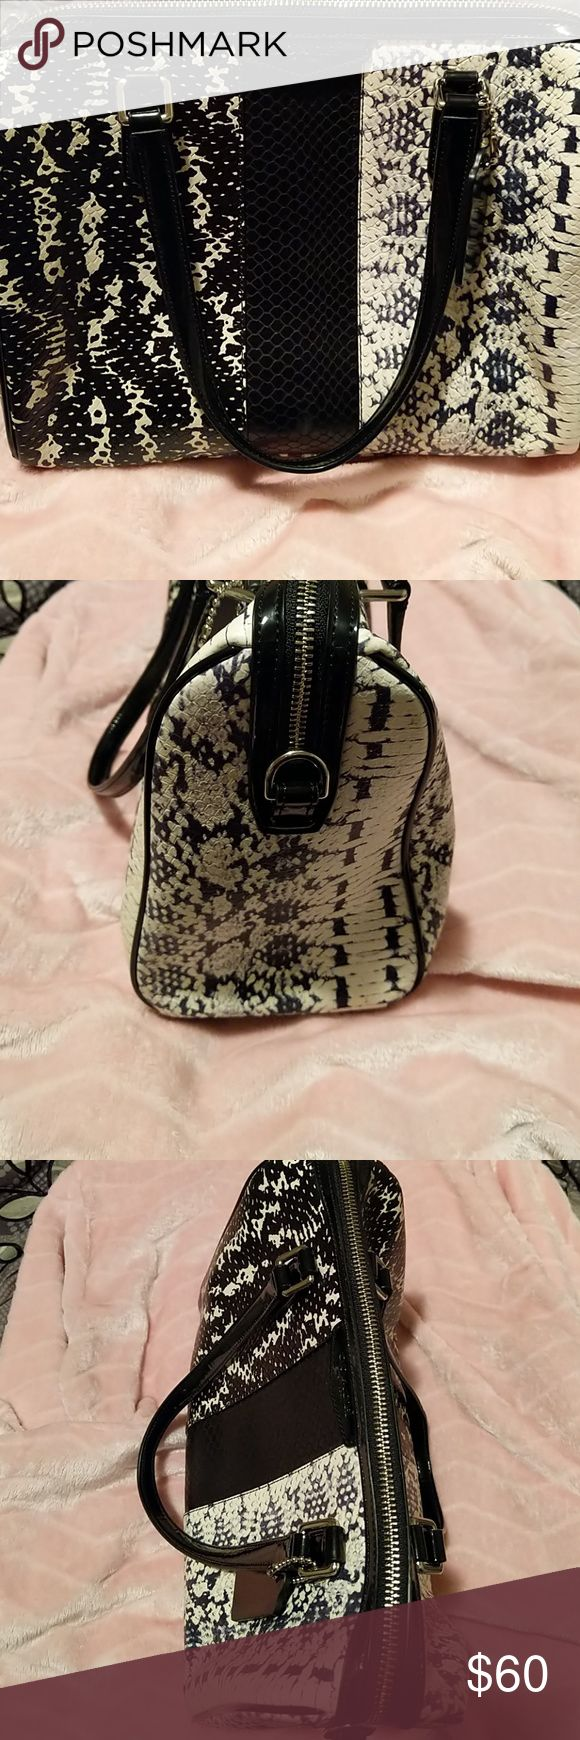 "Coach black and off-white satchel Like new, black and off -white textured handbag. 11 3/4"" long, 9"" tall, 5 1/2"" wide. Super cute, but no long strap or dust bag. Price is reflected. No rips, tears, stains or signs of wear. Coach Bags Satchels"